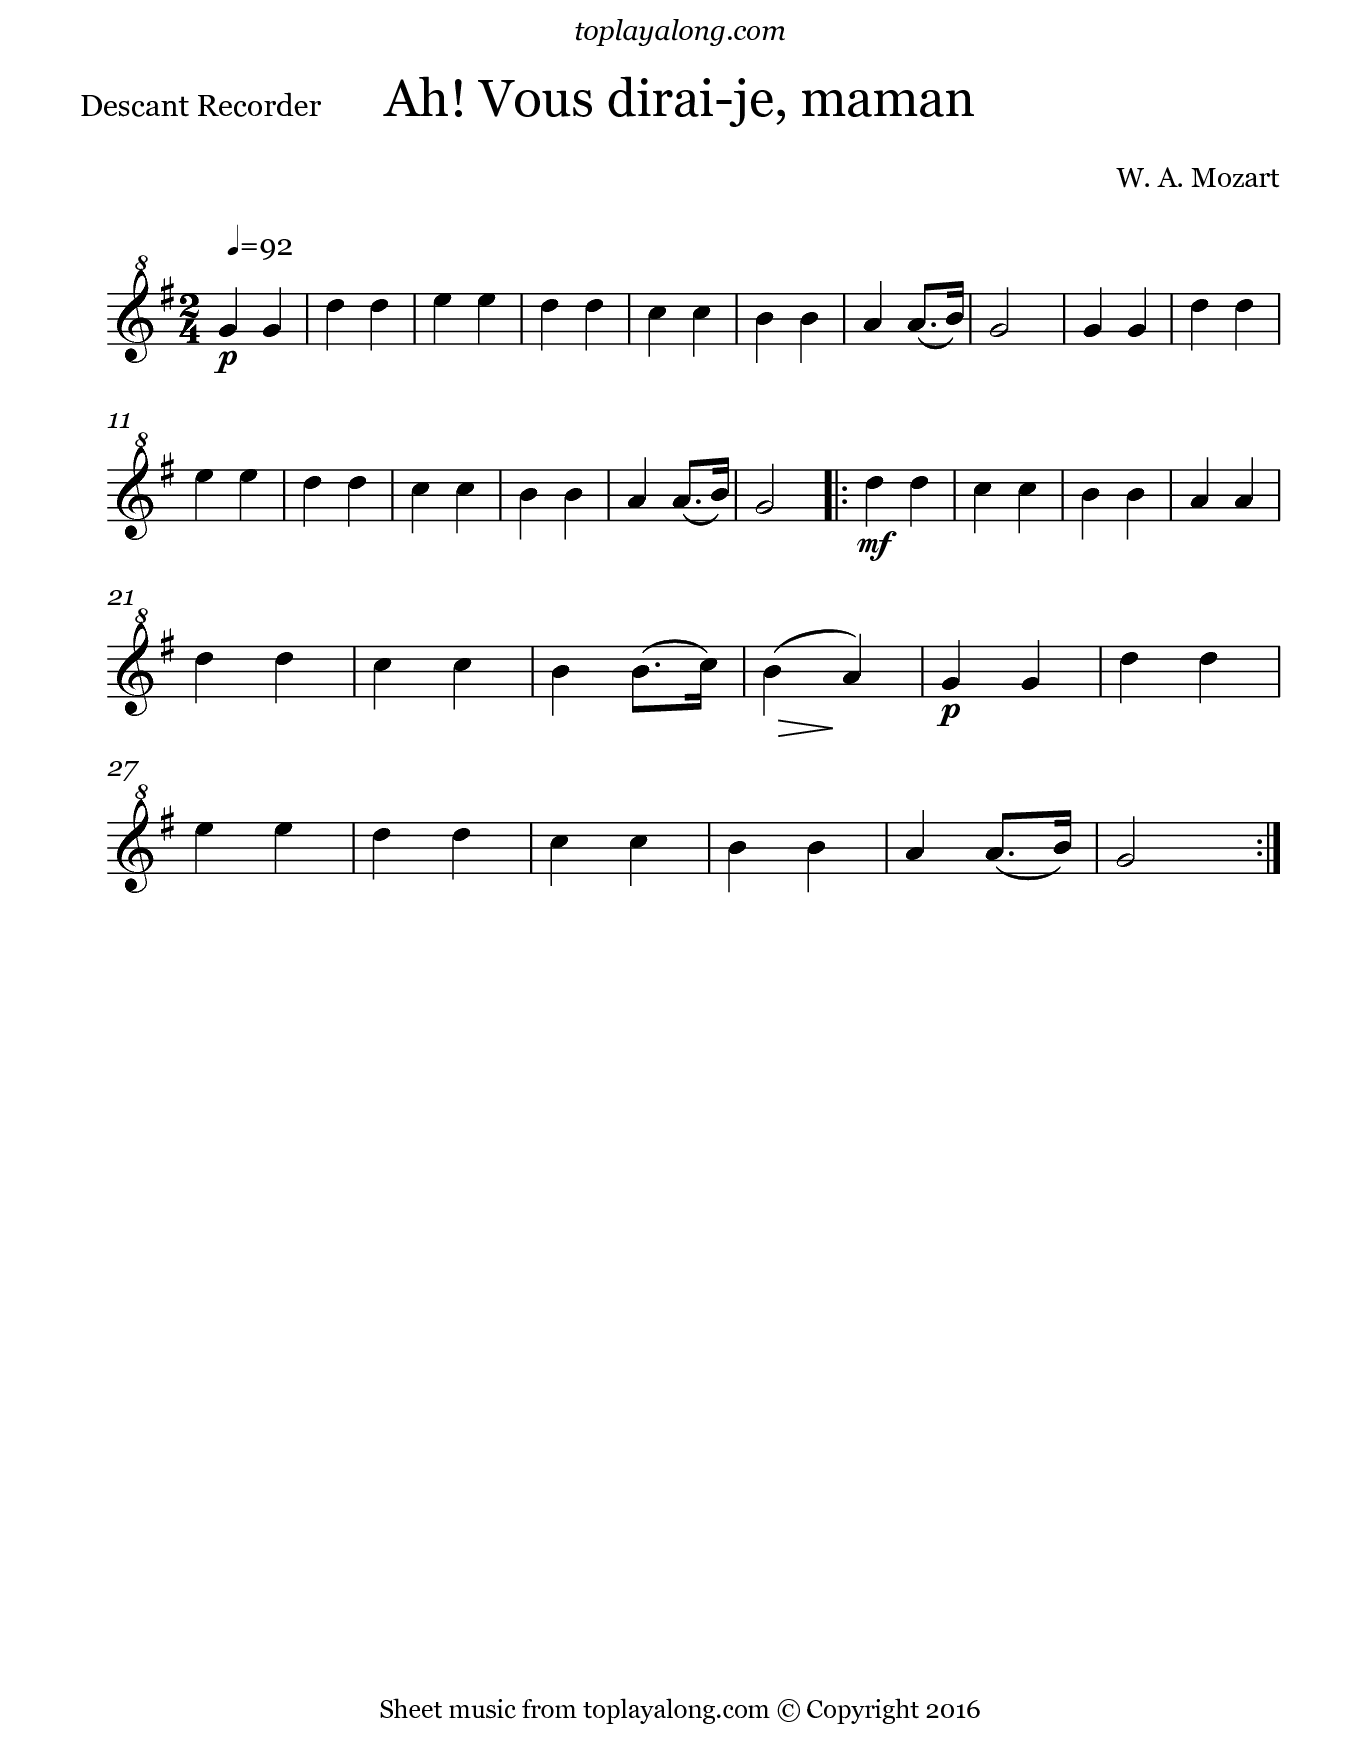 Ah! Vous dirai-je, maman by Mozart. Sheet music for Recorder, page 1.